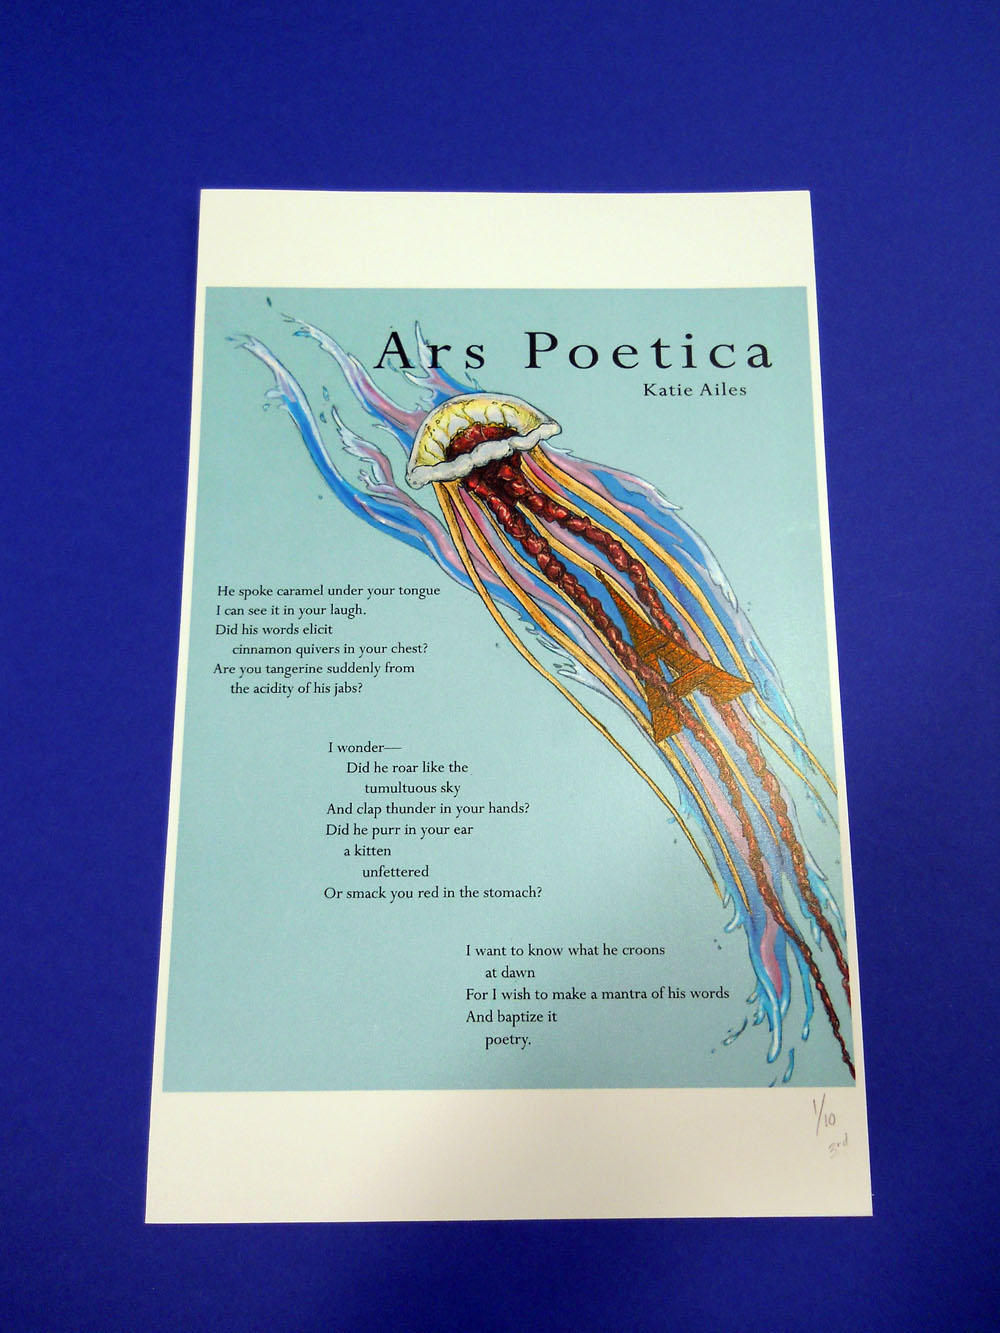 ars poetica analysis line by line